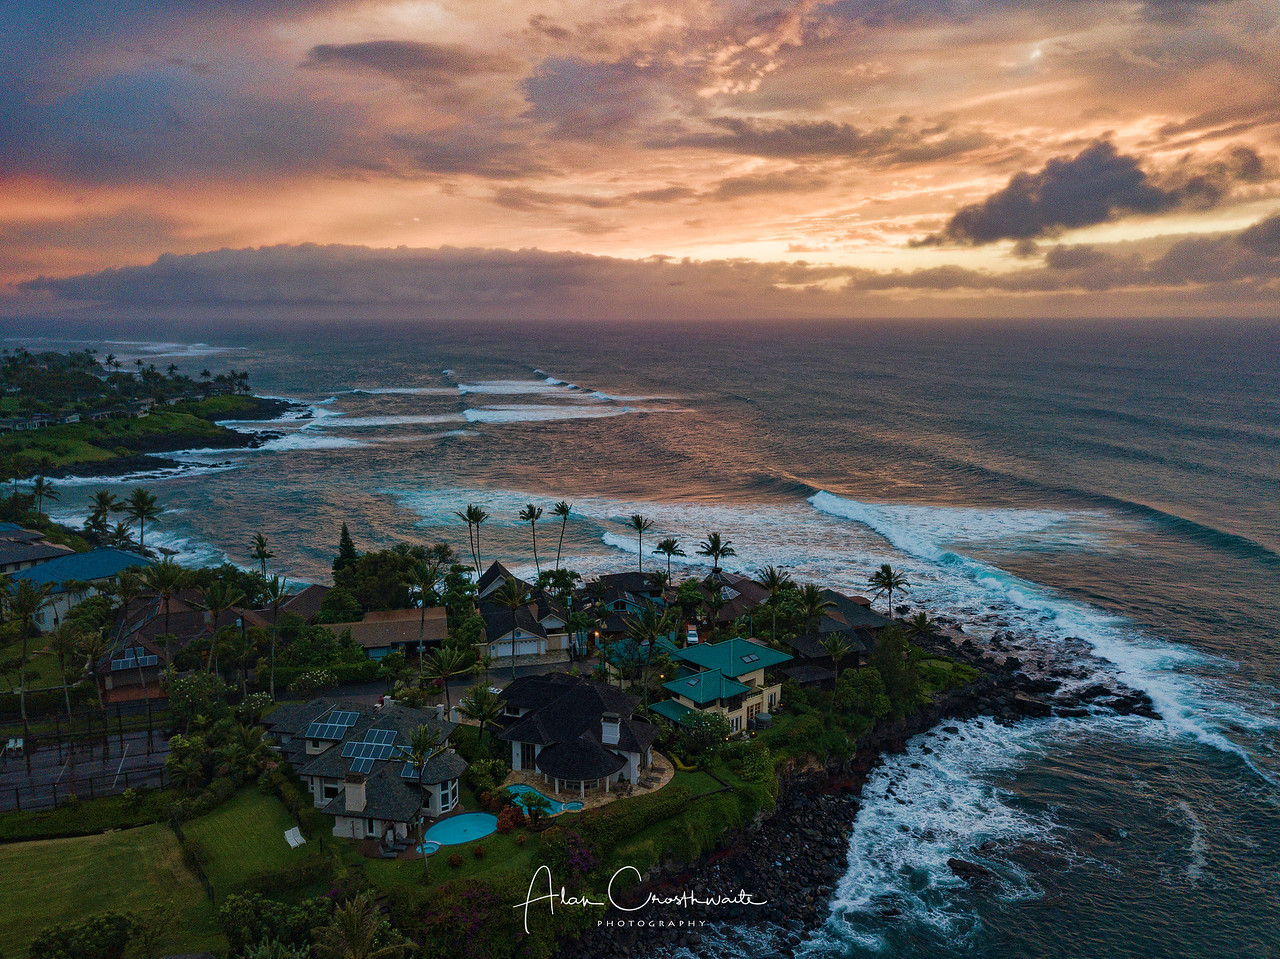 Drama and weather in Maui, Hawaii